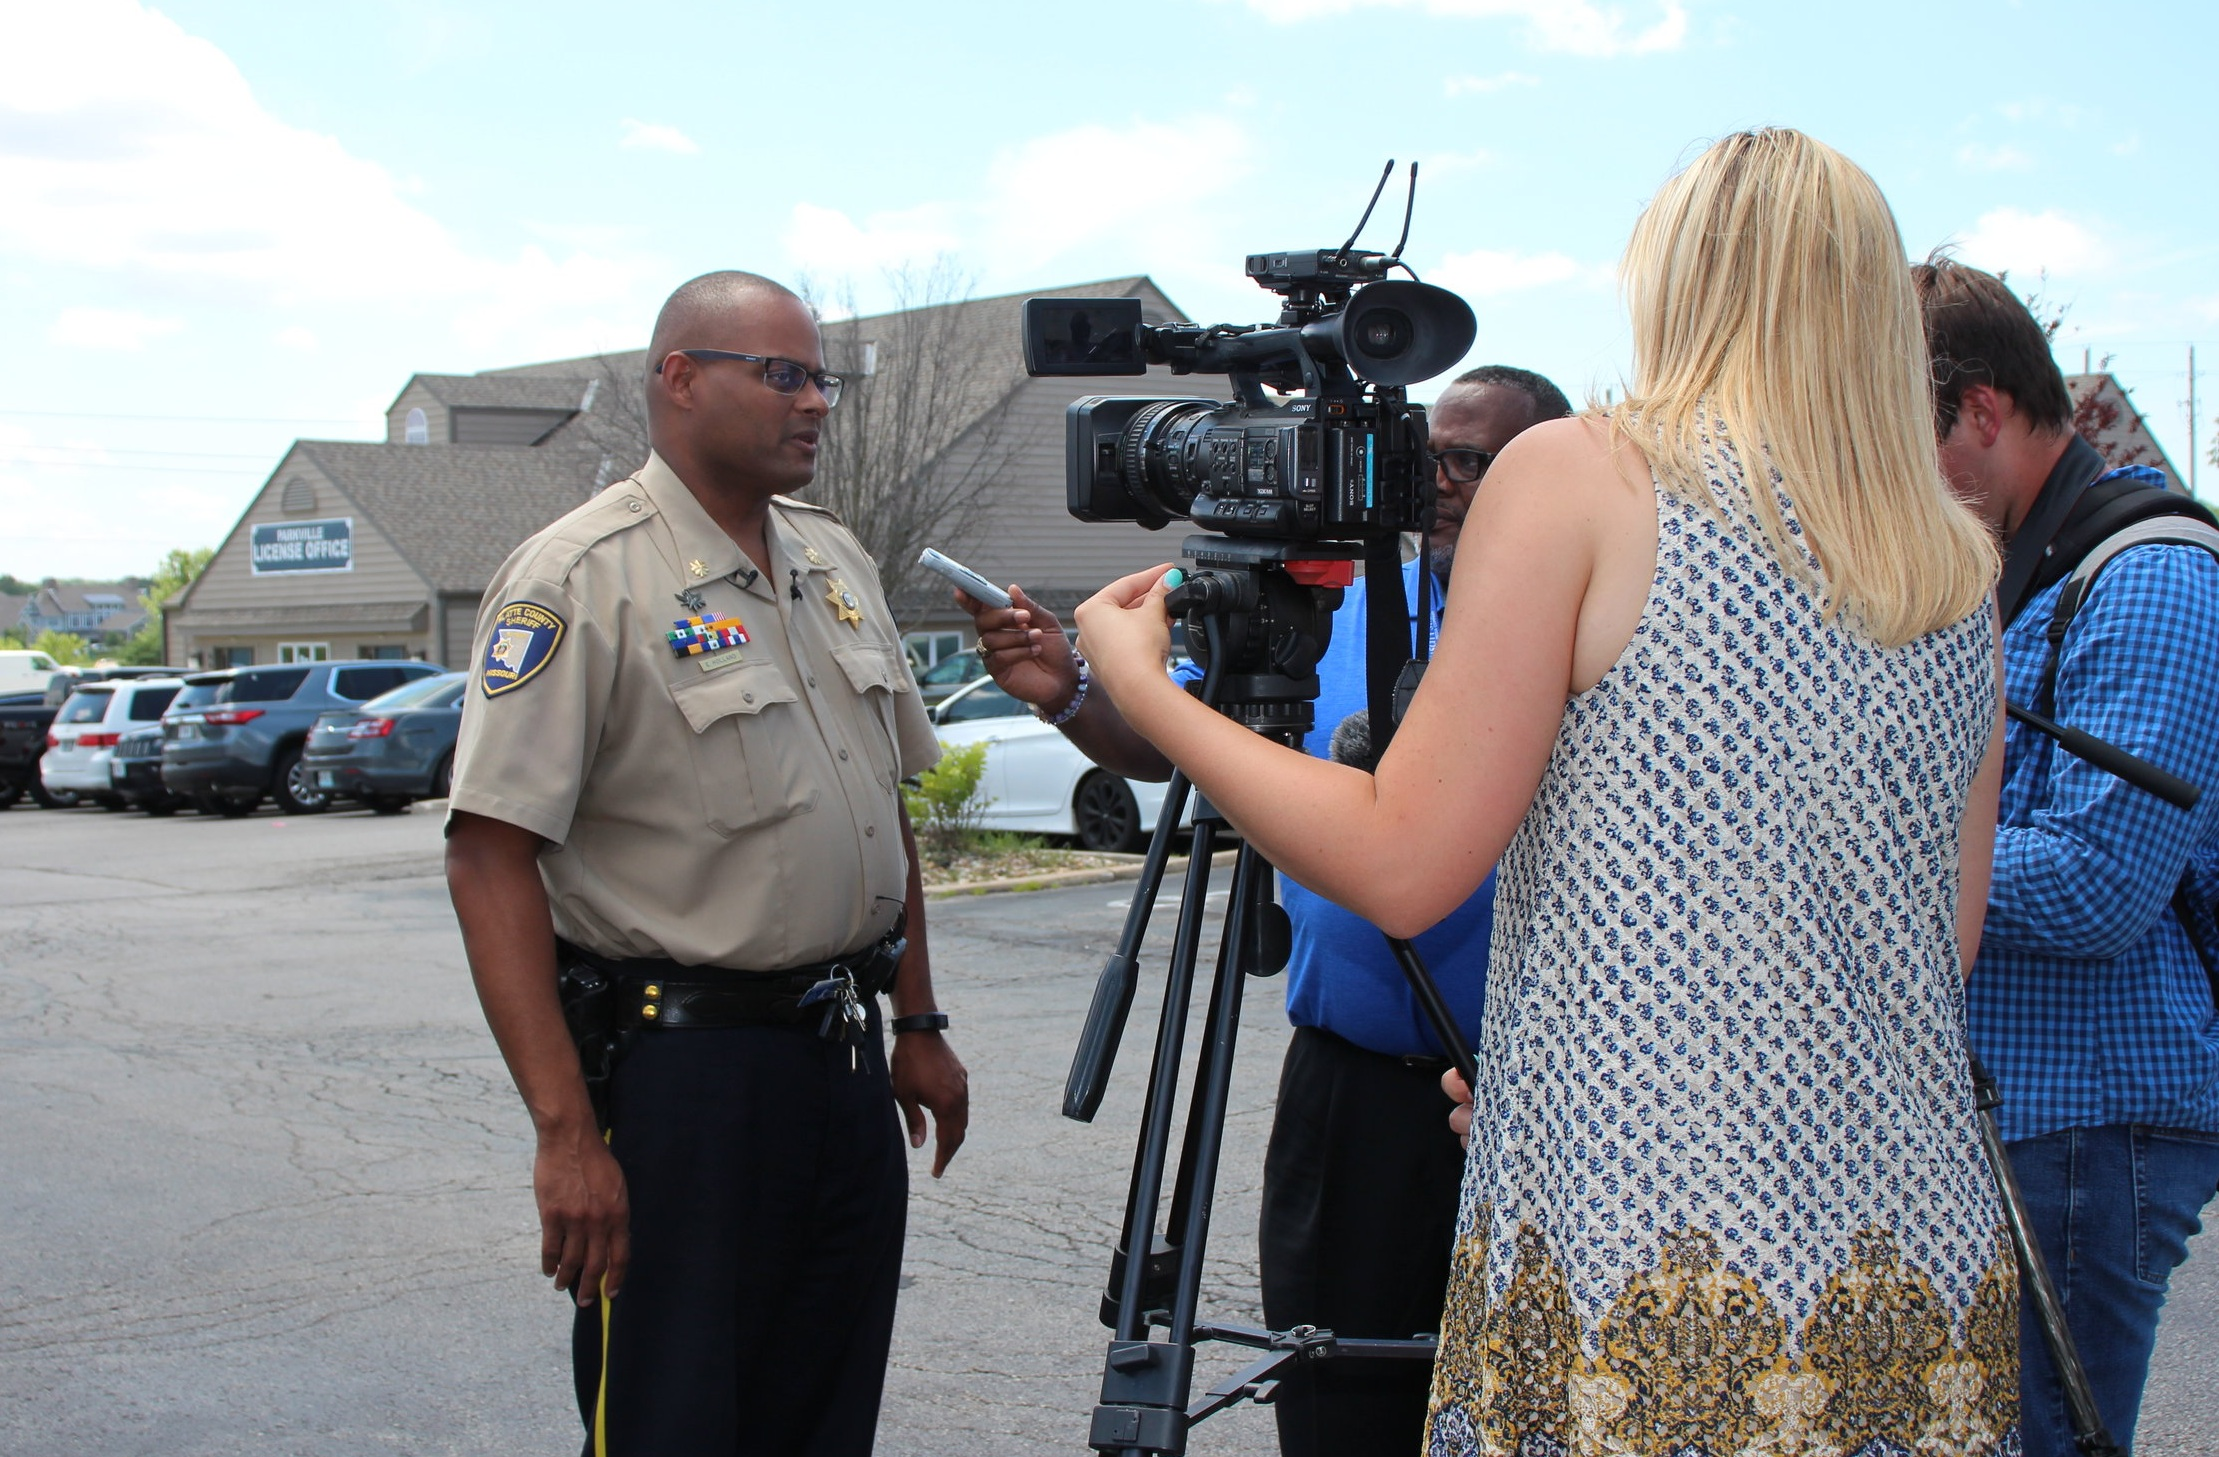 JEANETTE FAUBION/Citizen photo Maj. Erik Holland of the Platte County Sheriff's Office updated media on the situation shortly after the suspect was apprehended on Tuesday, July 9.